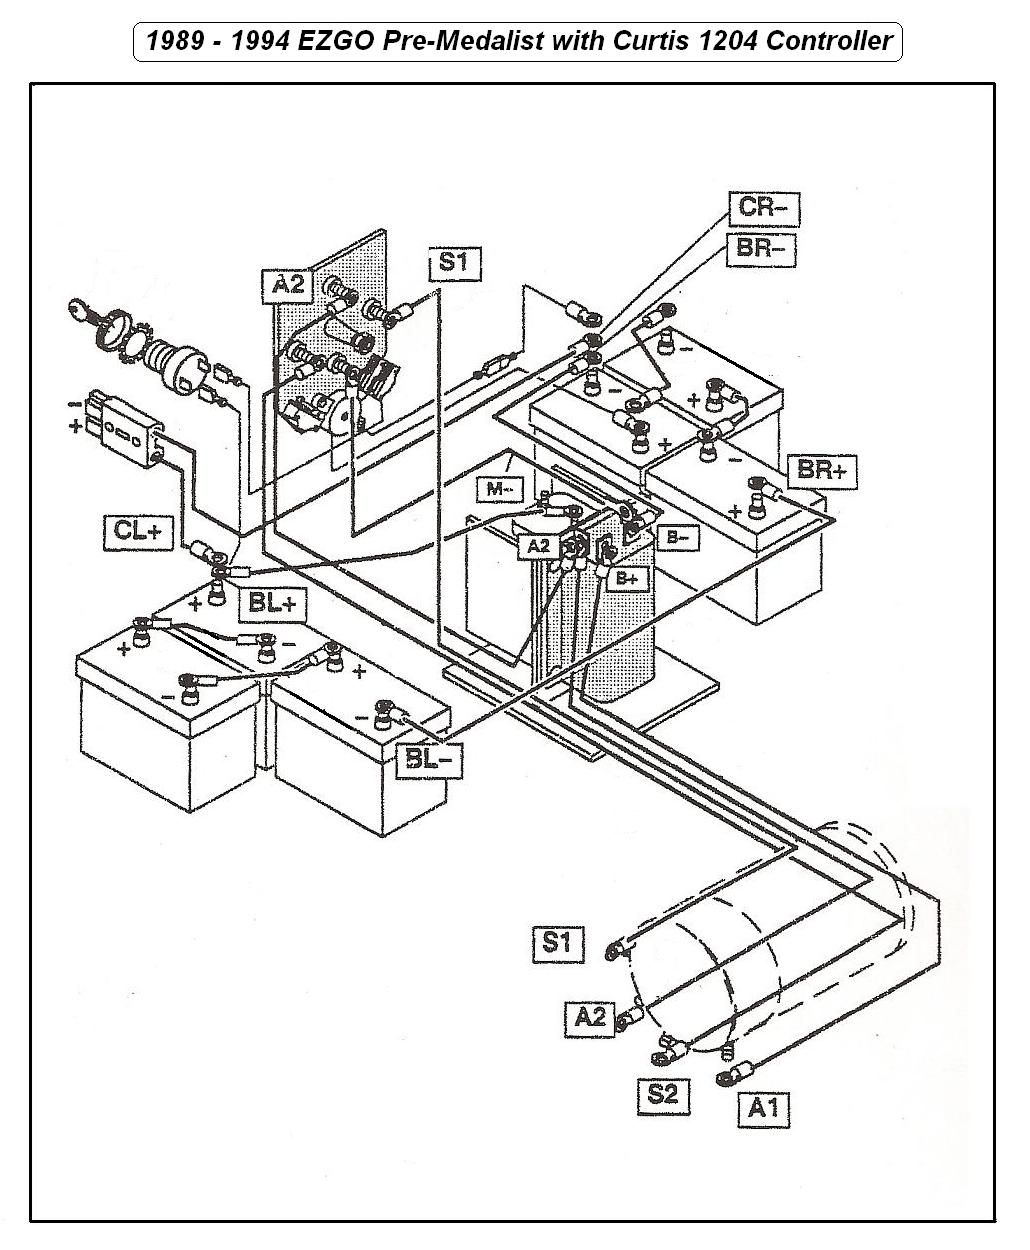 A89_94EZ_Wiring ezgo wiring diagram ezgo fuel pump \u2022 wiring diagrams j squared co ezgo golf cart wiring diagram at crackthecode.co